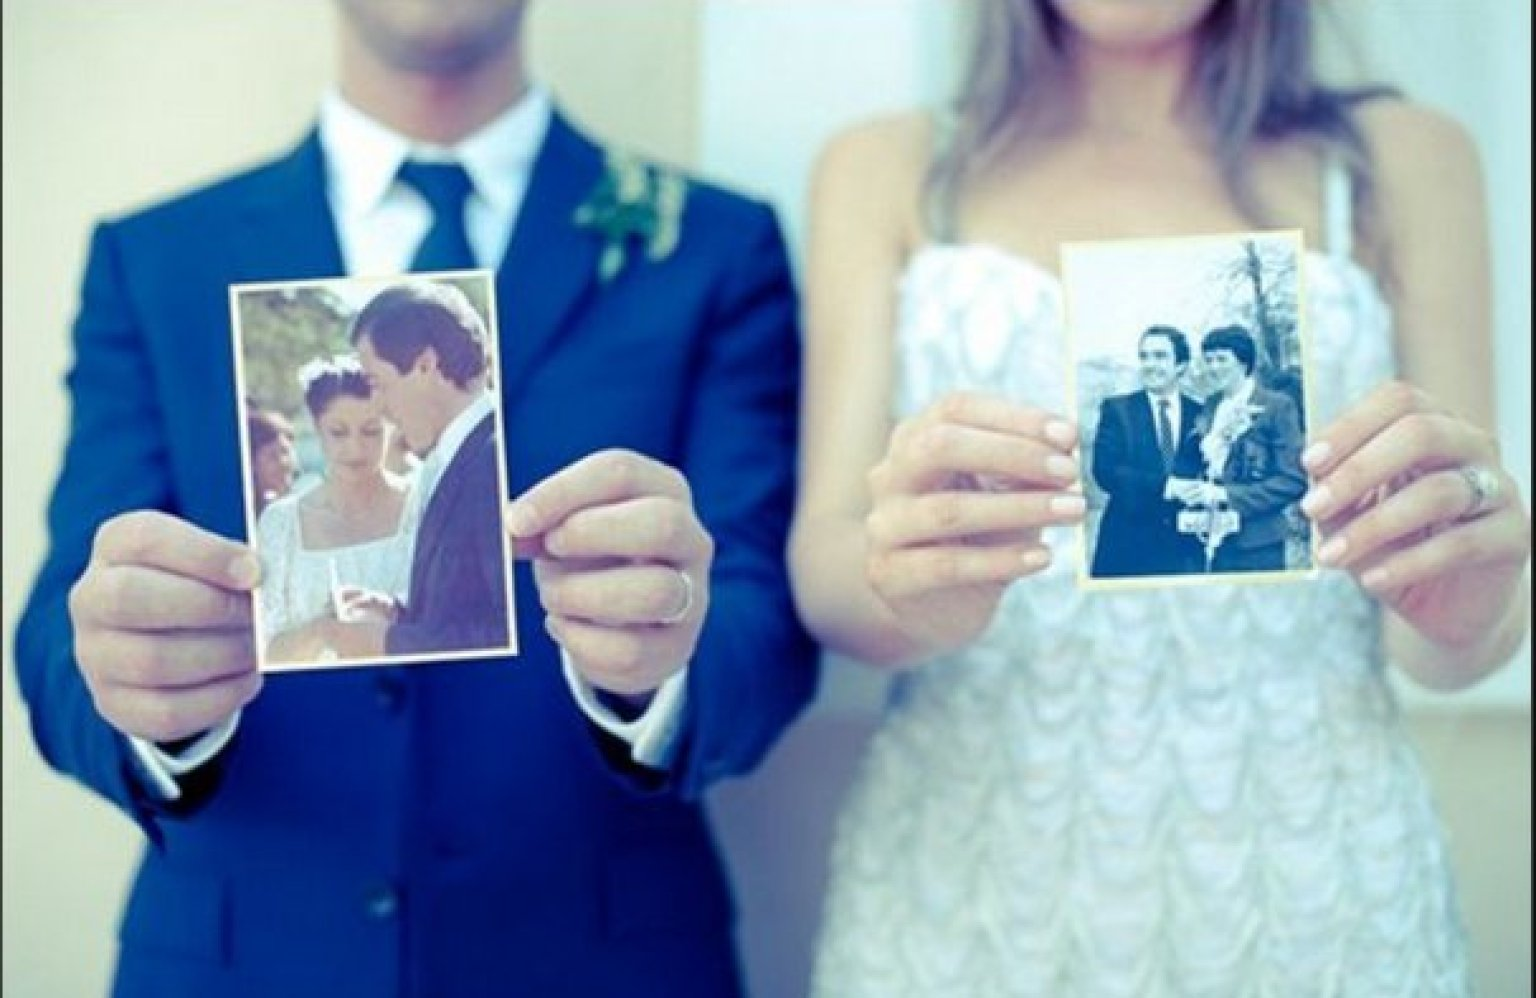 100 Sentimental Wedding Ideas You\'ll Want to Steal | HuffPost